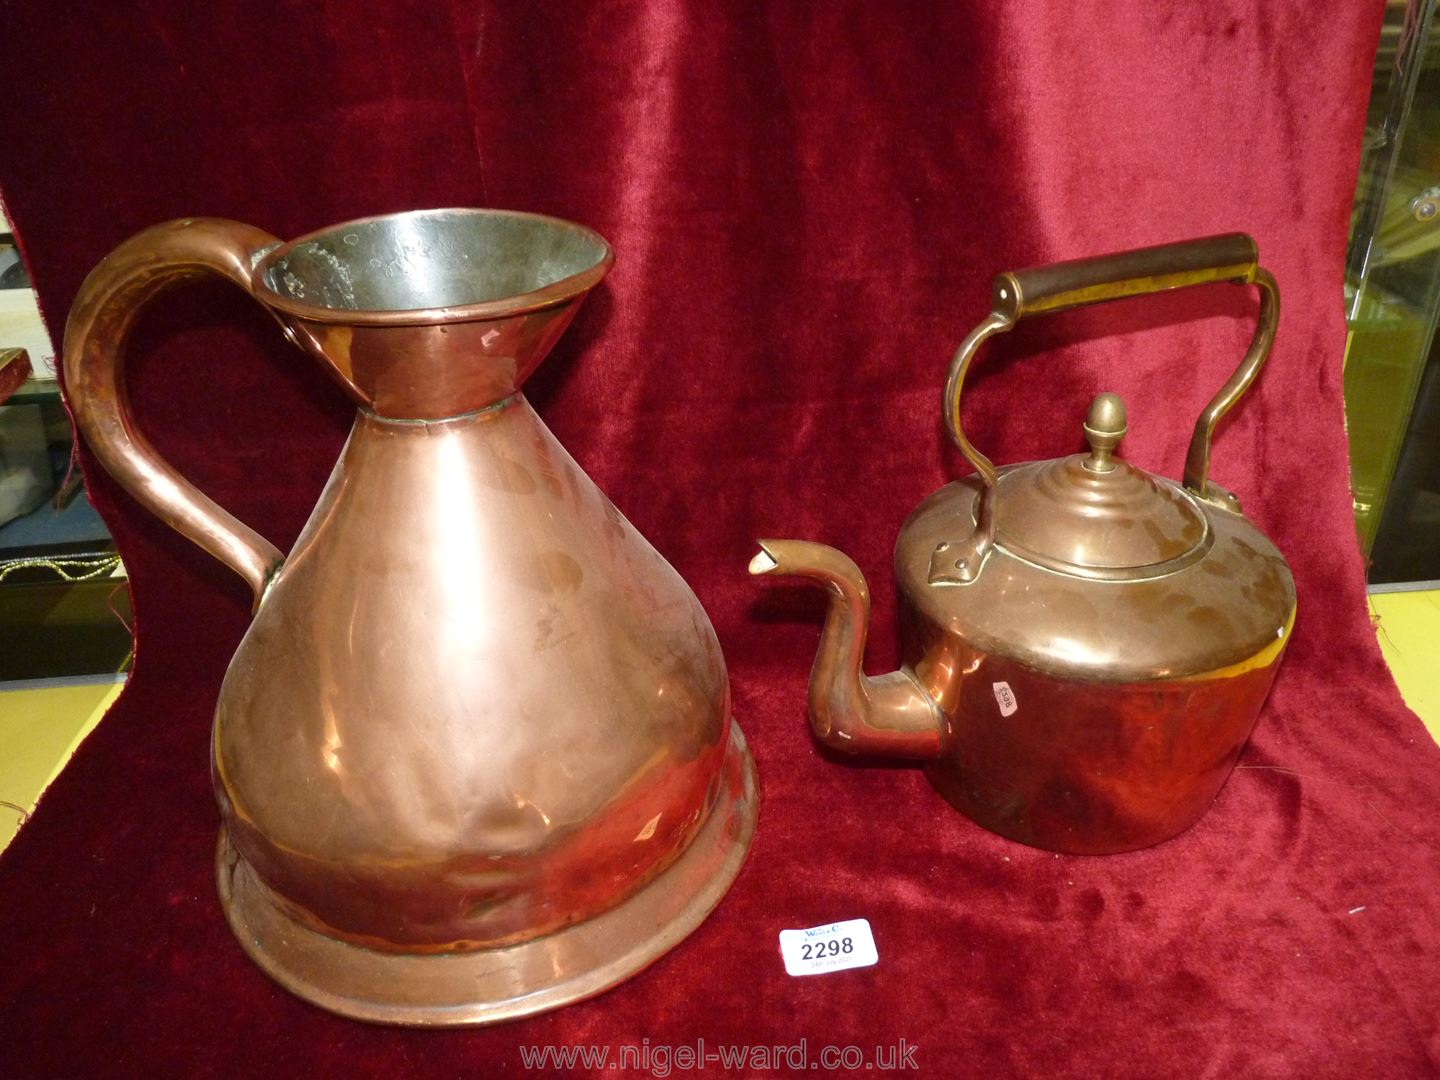 A large Copper Jug and a copper Kettle.